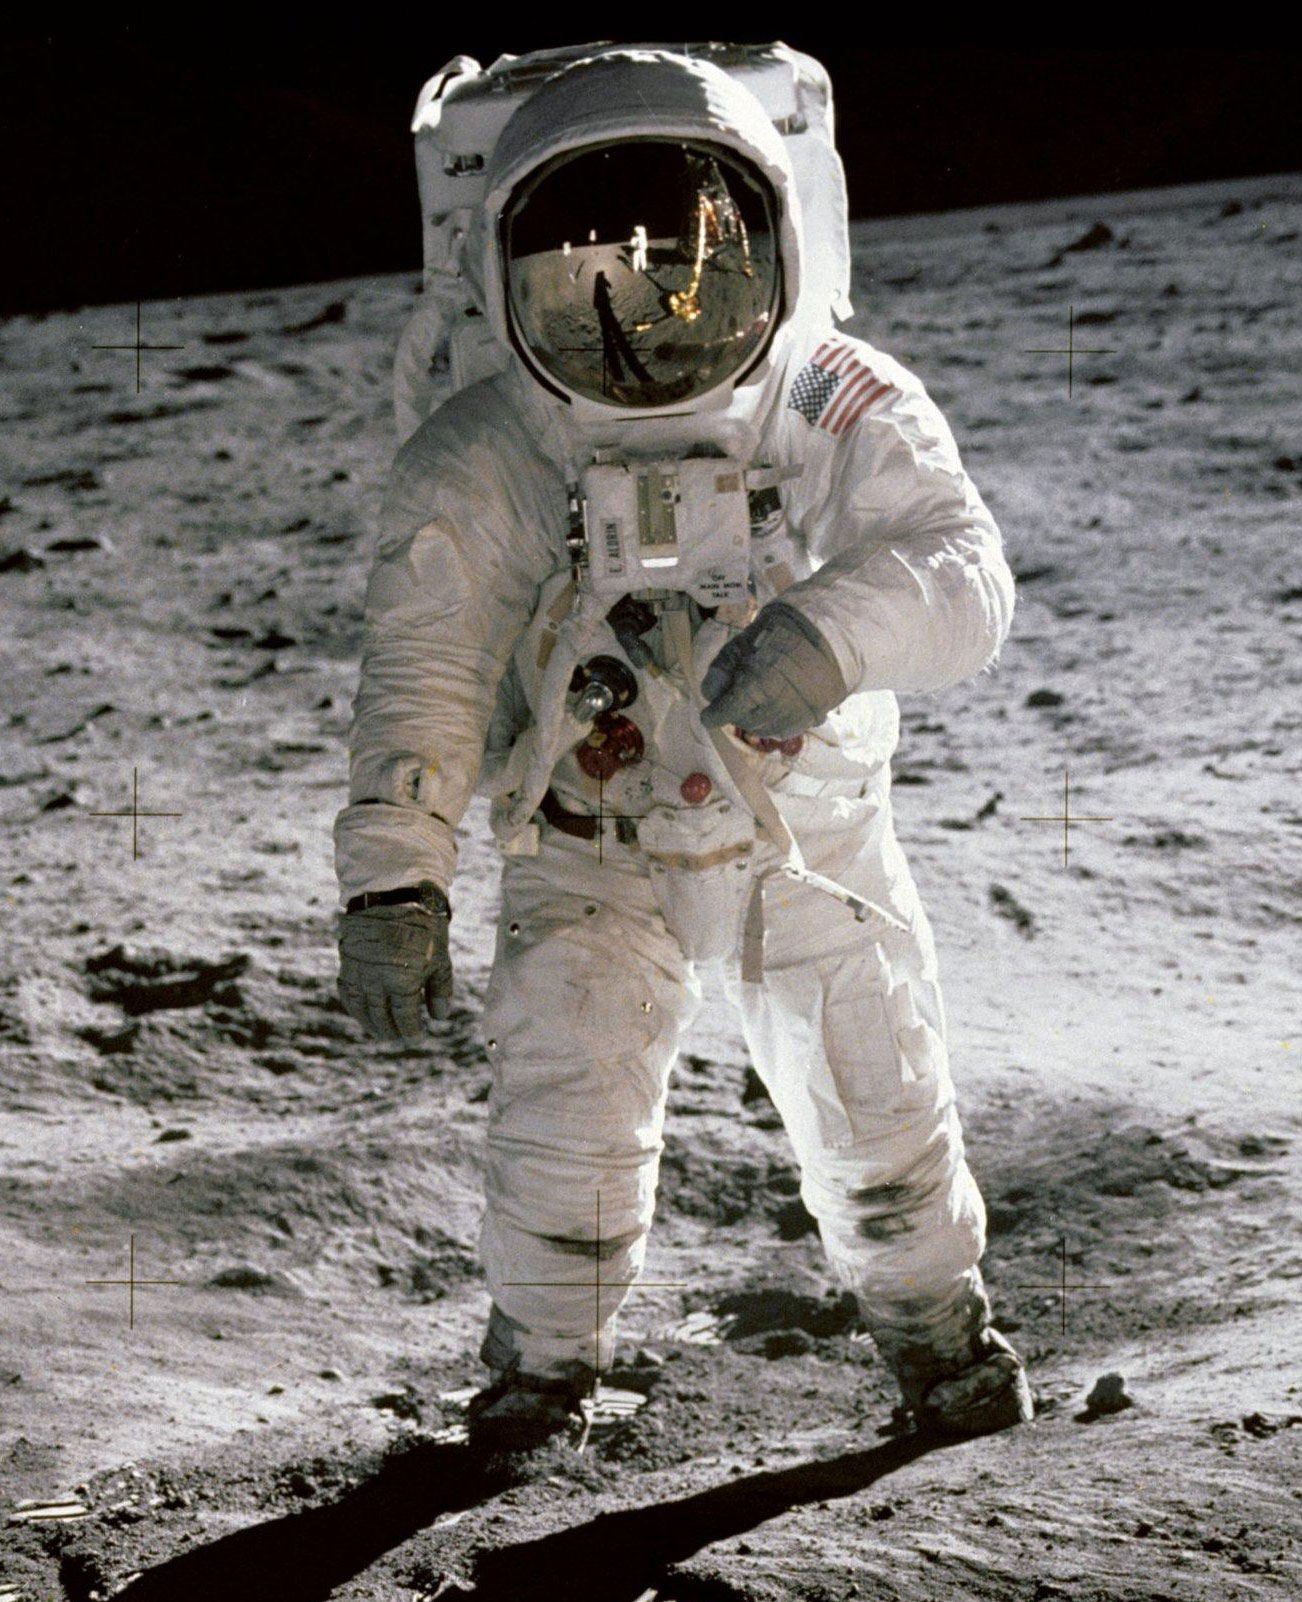 If radiation is so bad, how did the Apollo astronauts survive?